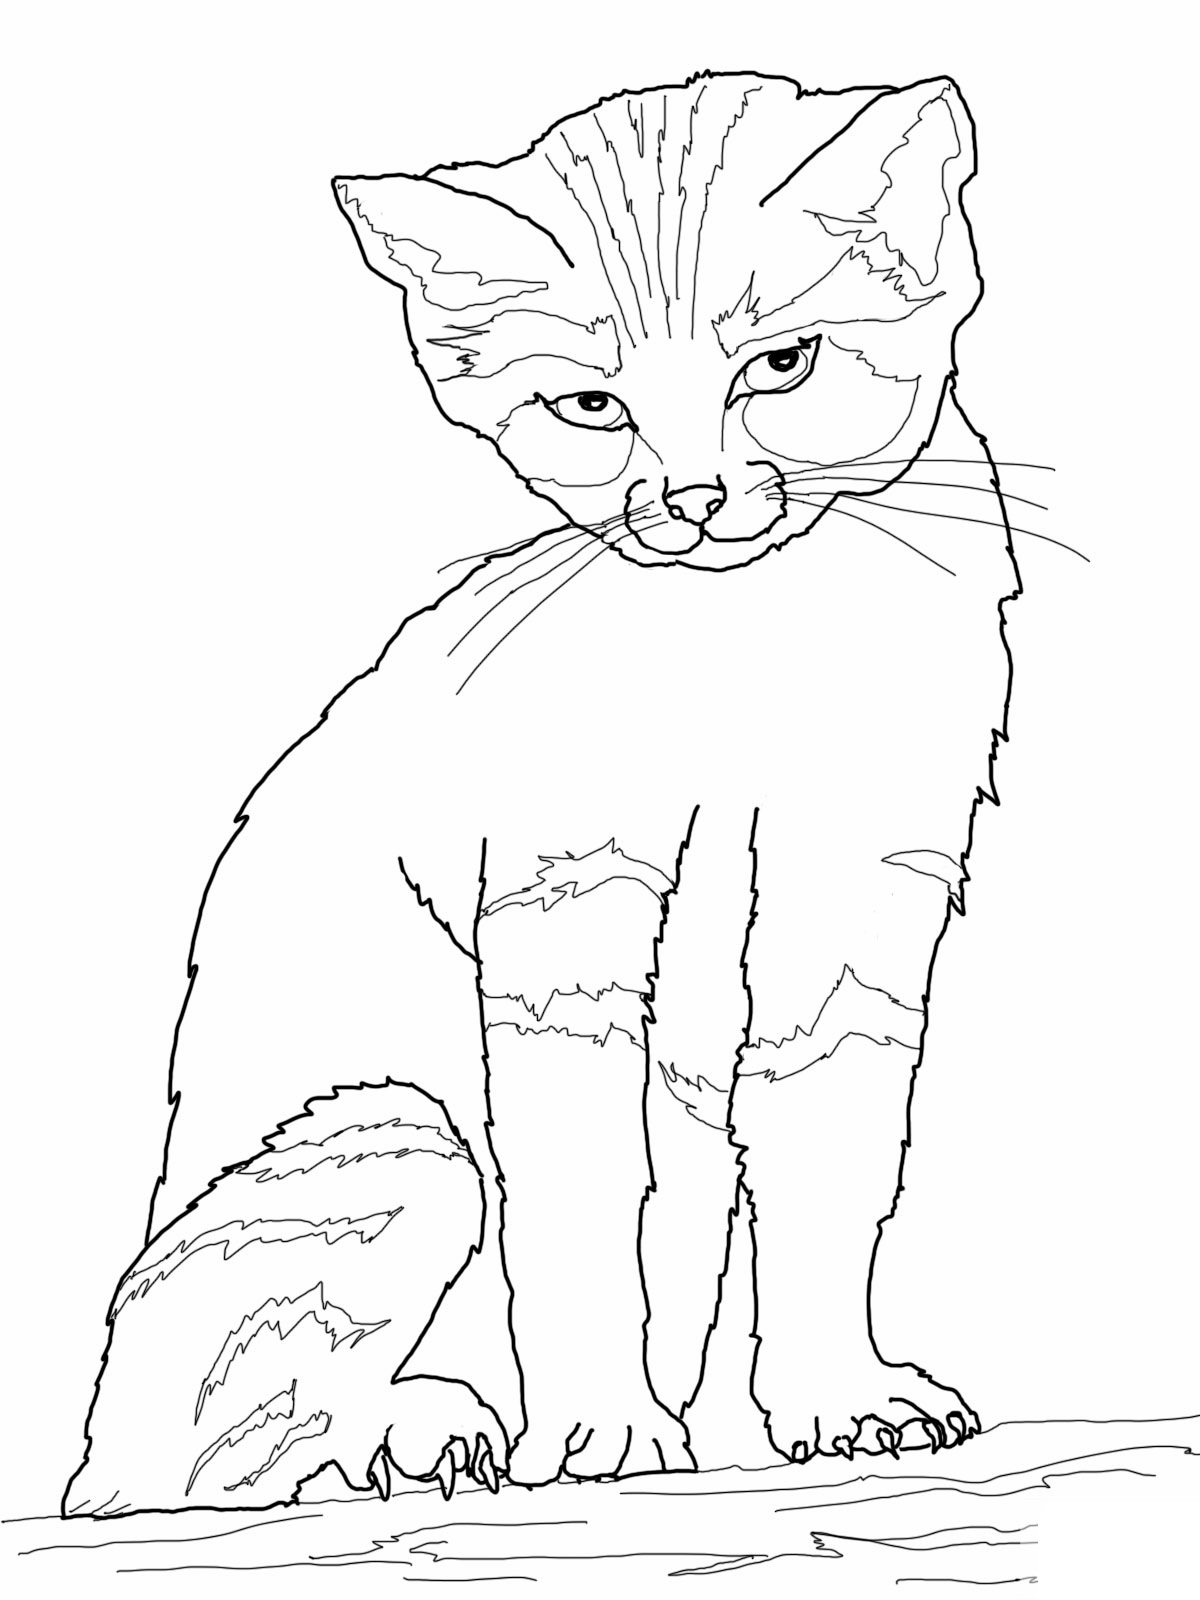 cat colouring pages kitten coloring pages best coloring pages for kids cat colouring pages 1 1